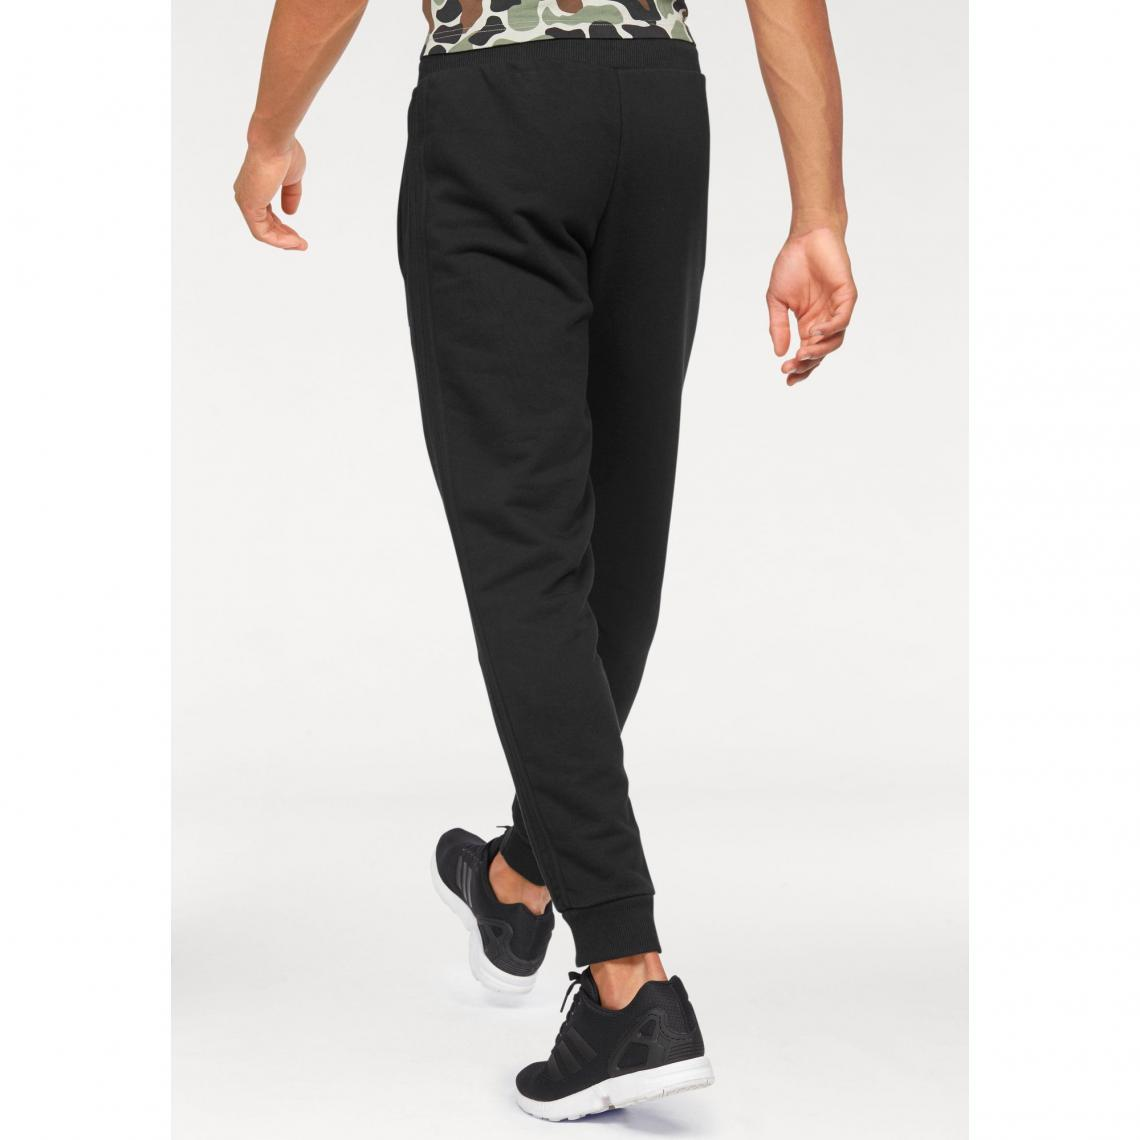 Homme Sweatpat Ft Adidas Originals 3 De Striped Pantalon Survêtement H2EDYW9I